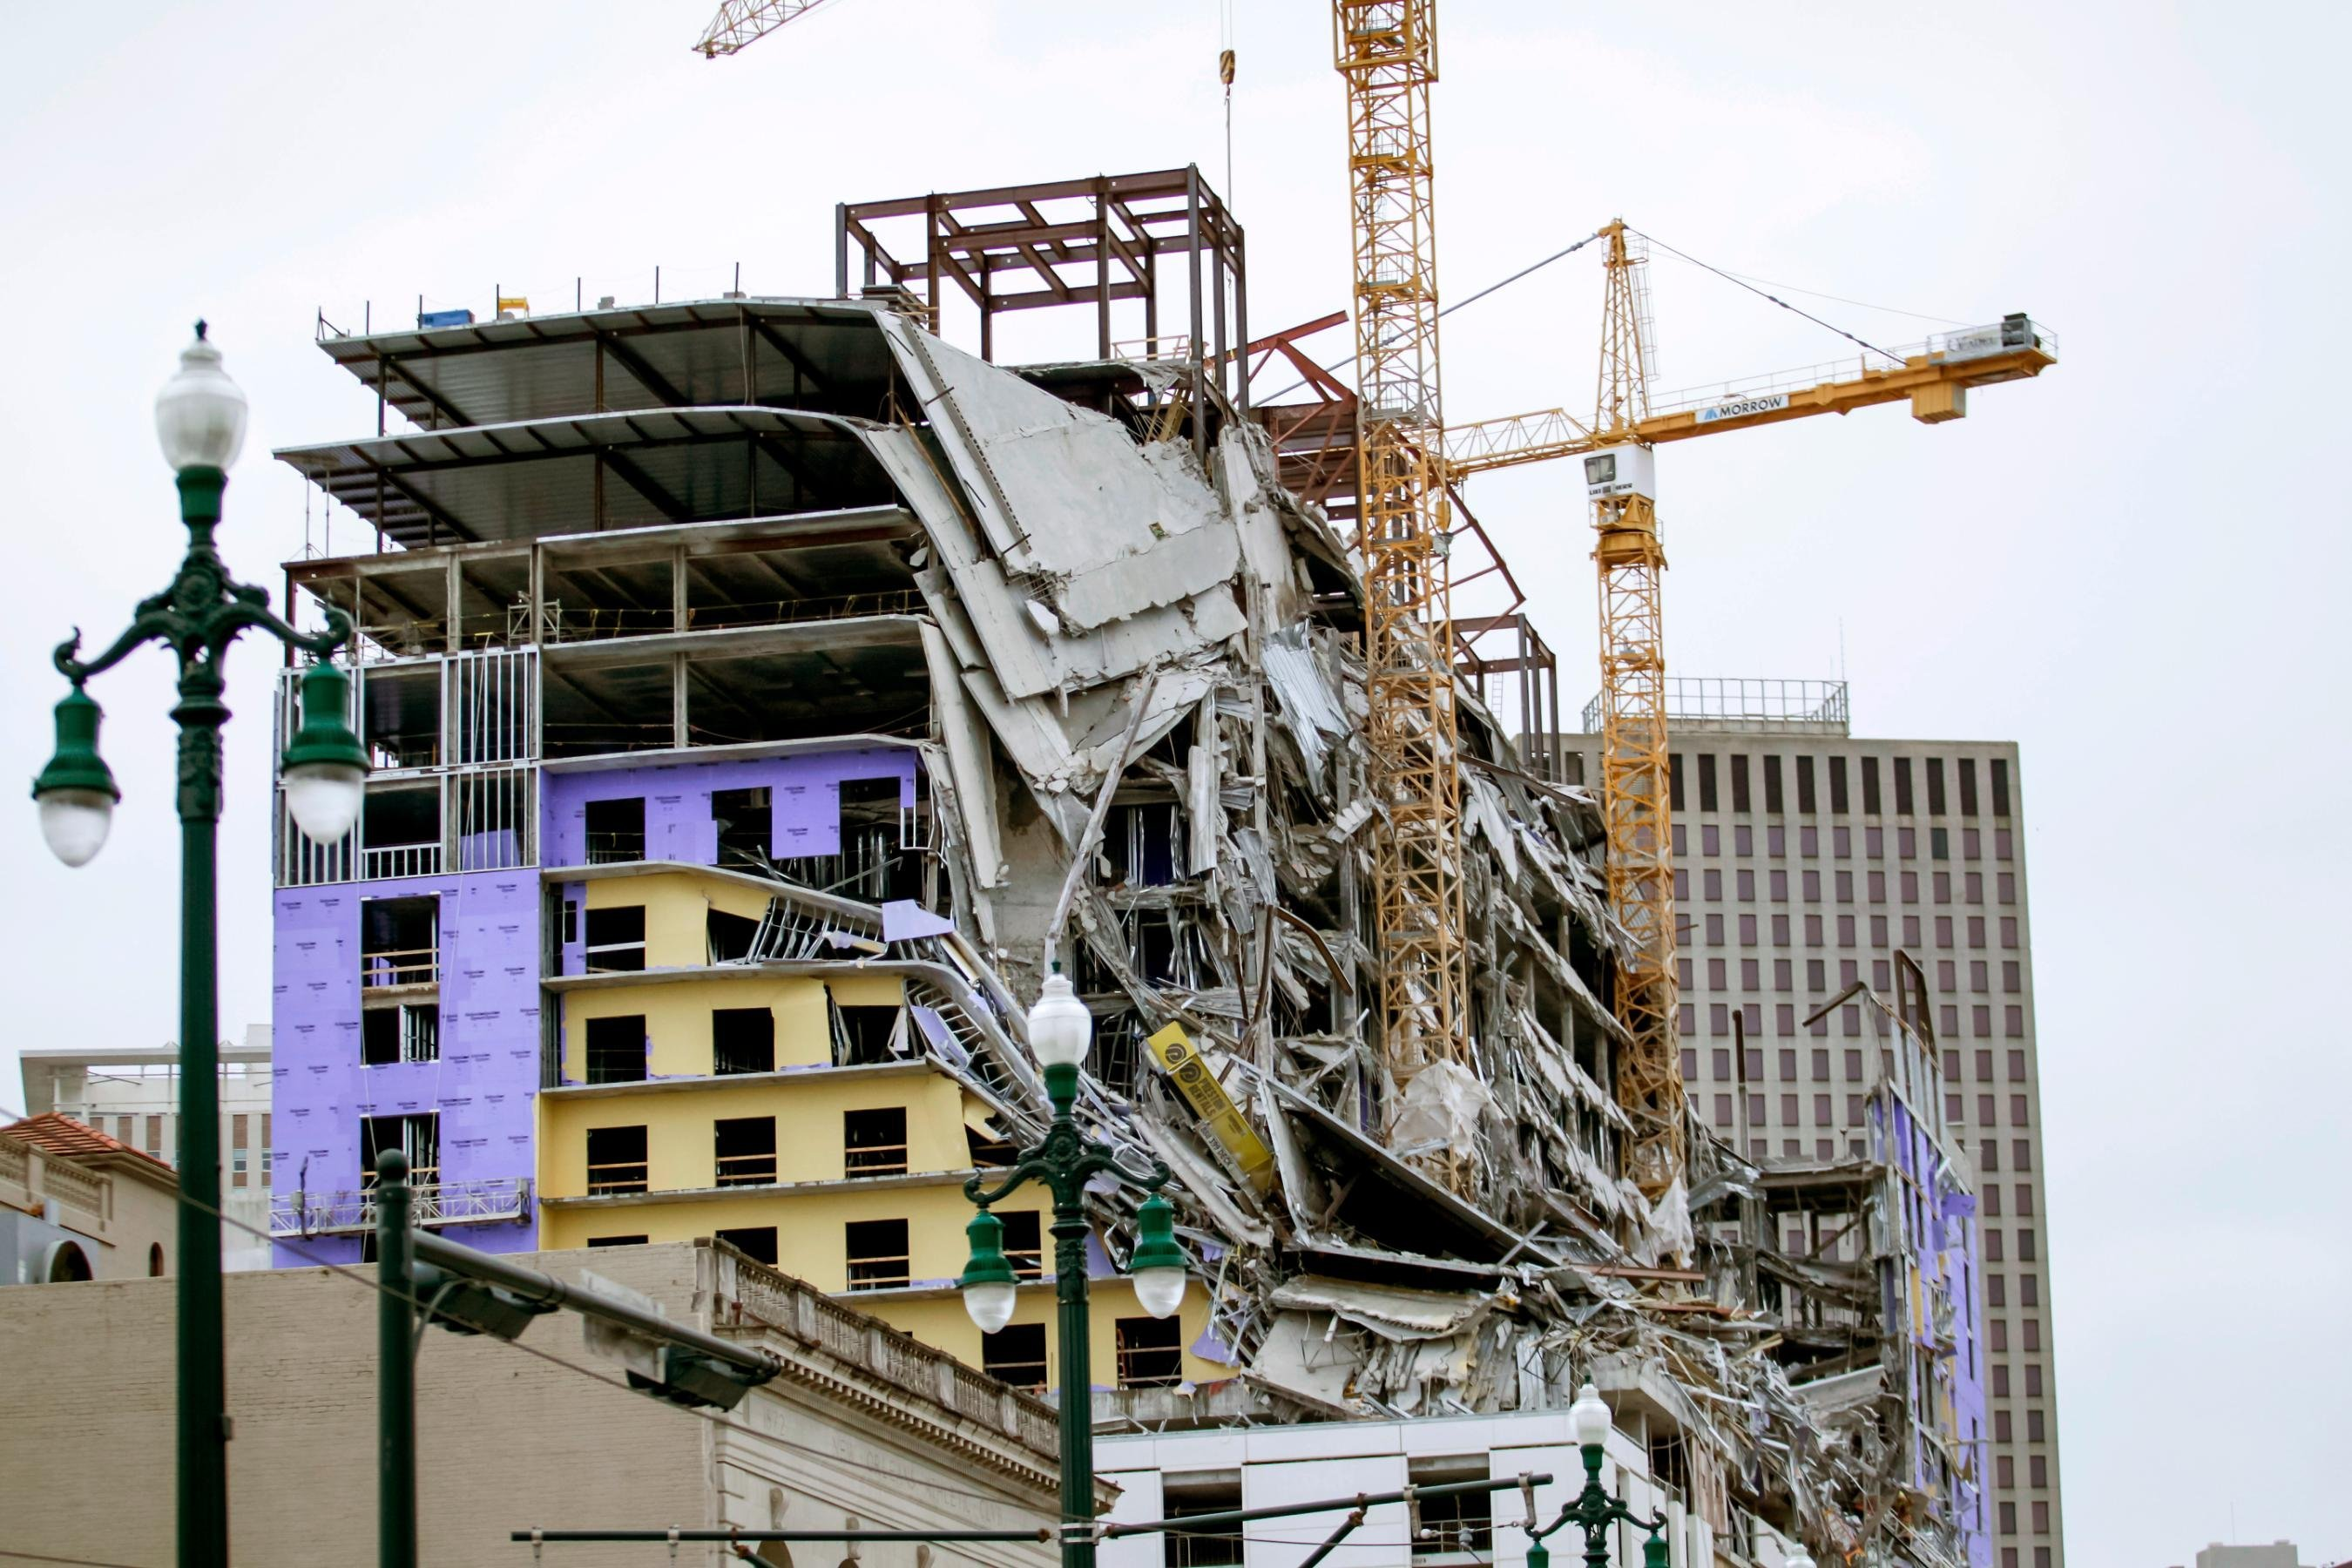 Two cranes were demolished at the Hard Rock Hotel construction site in New Orleans